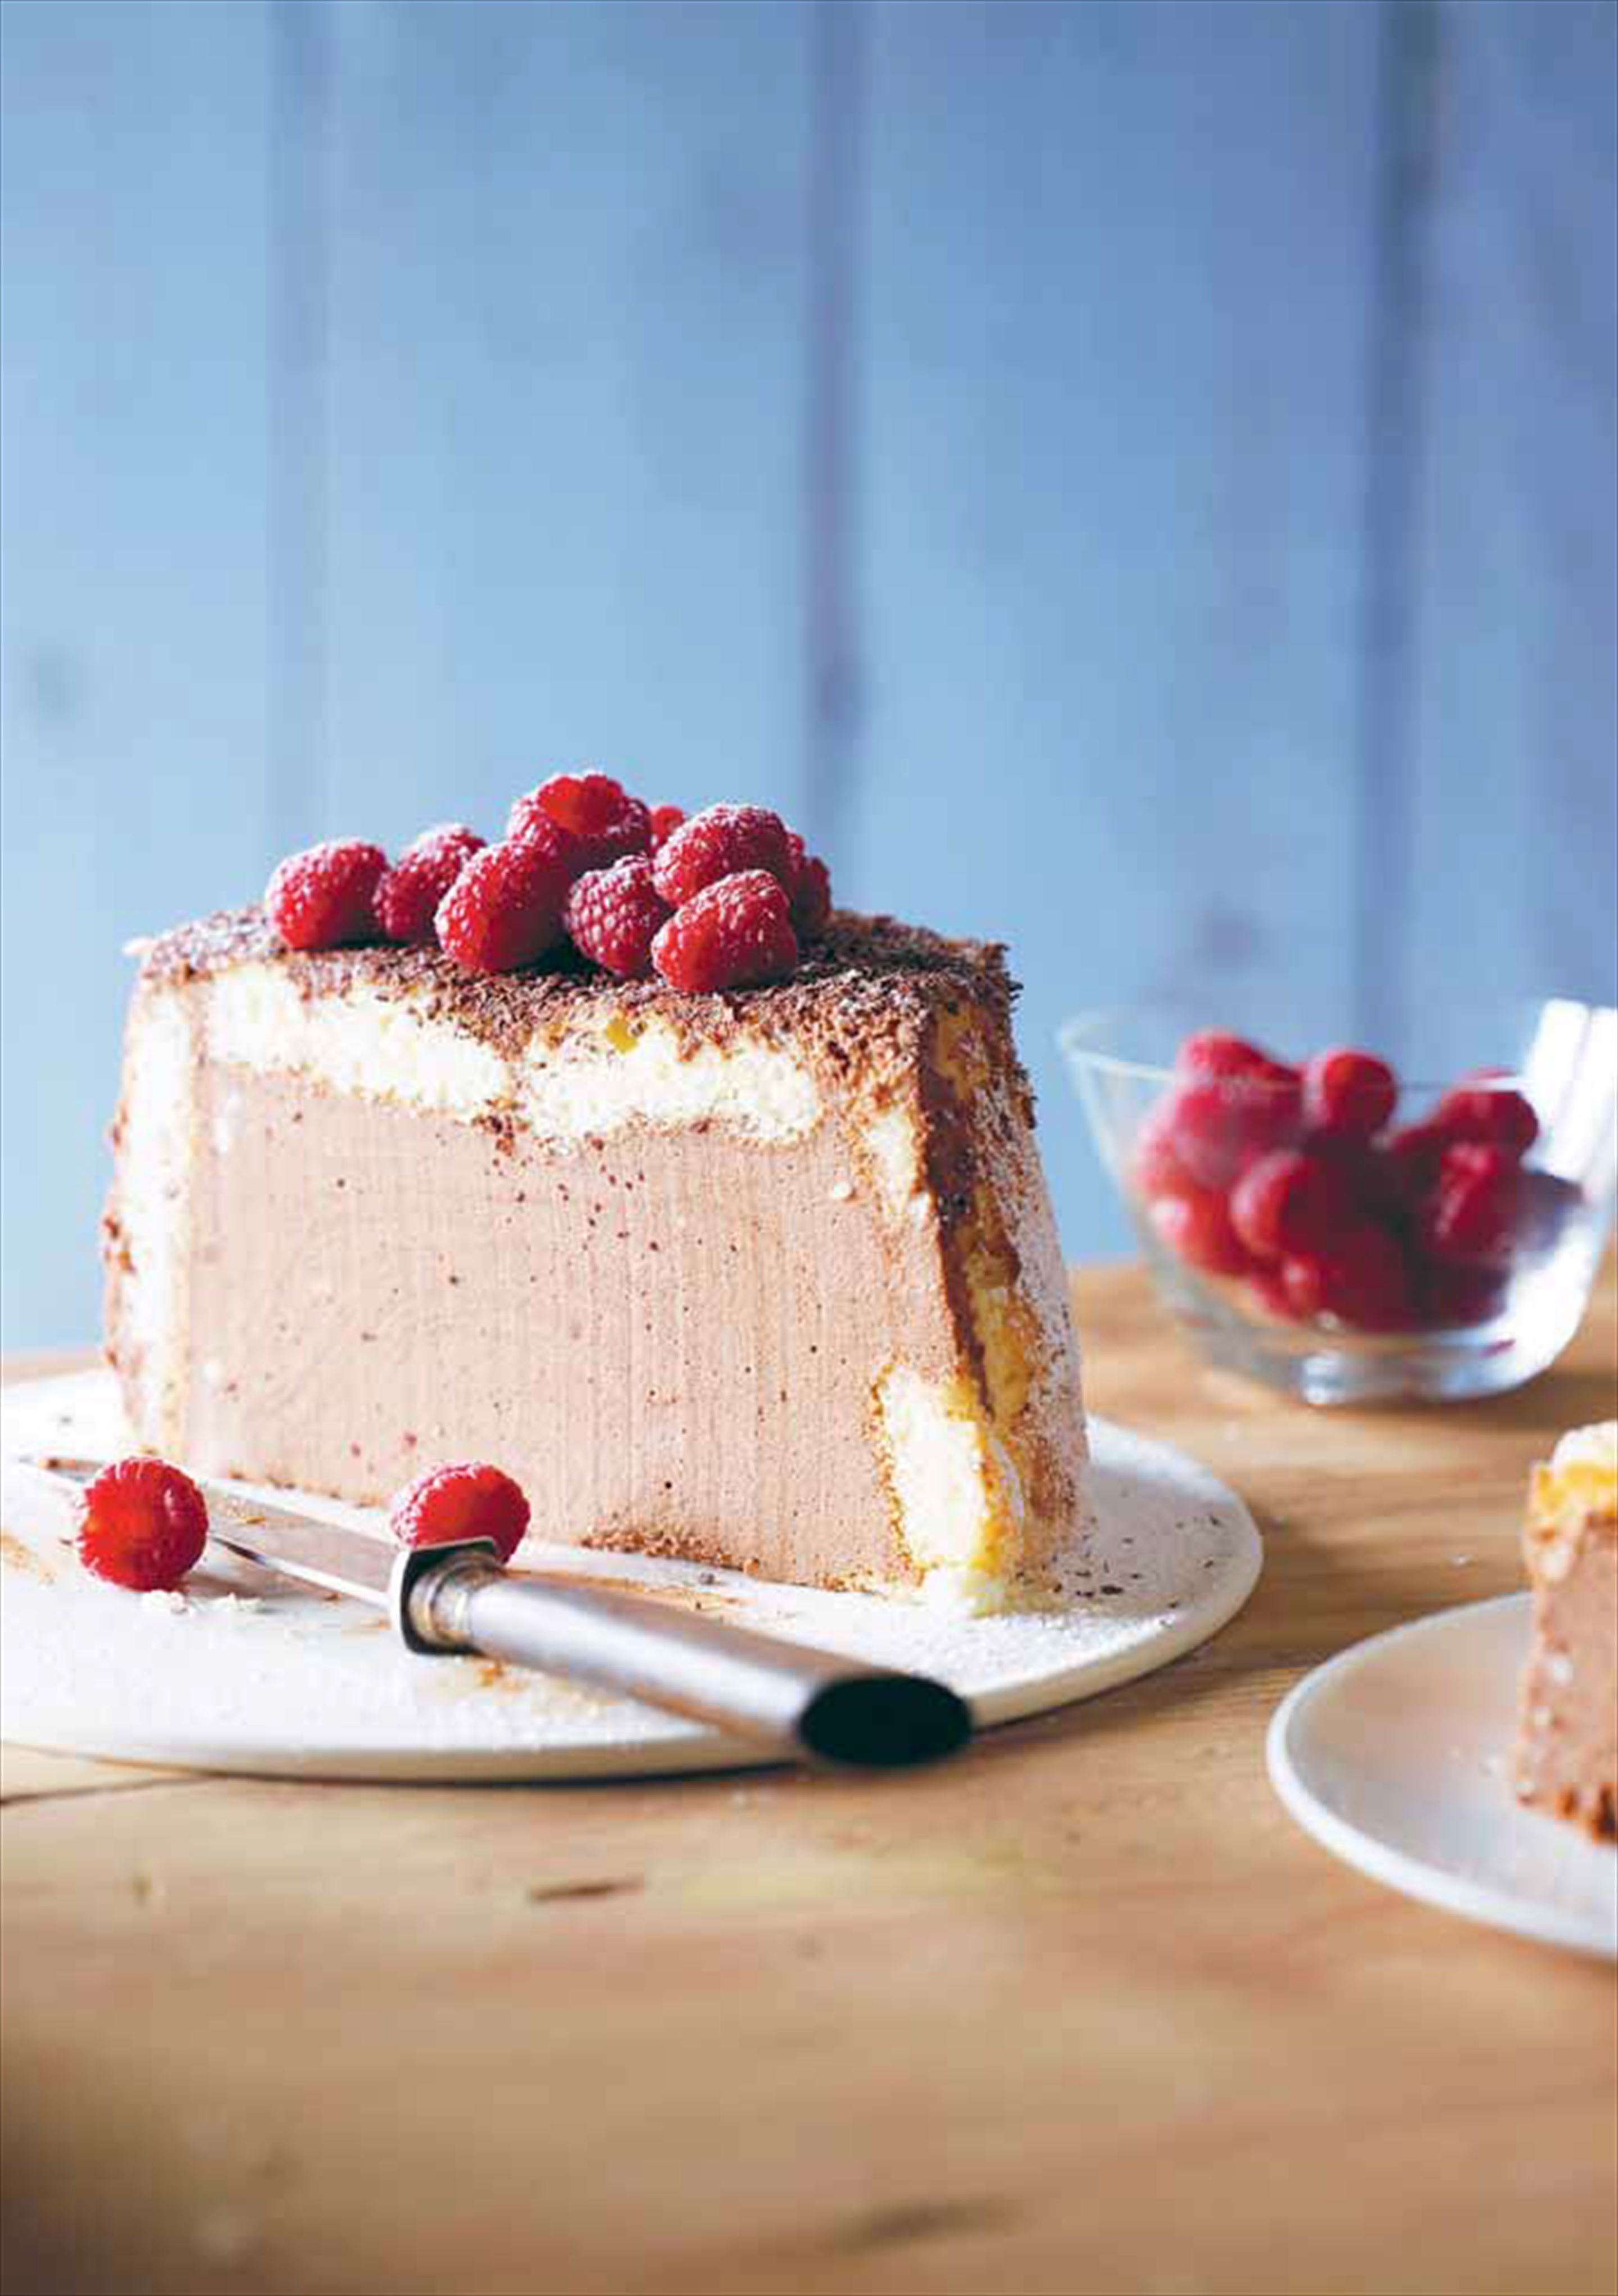 Chocolate charlotte with raspberries